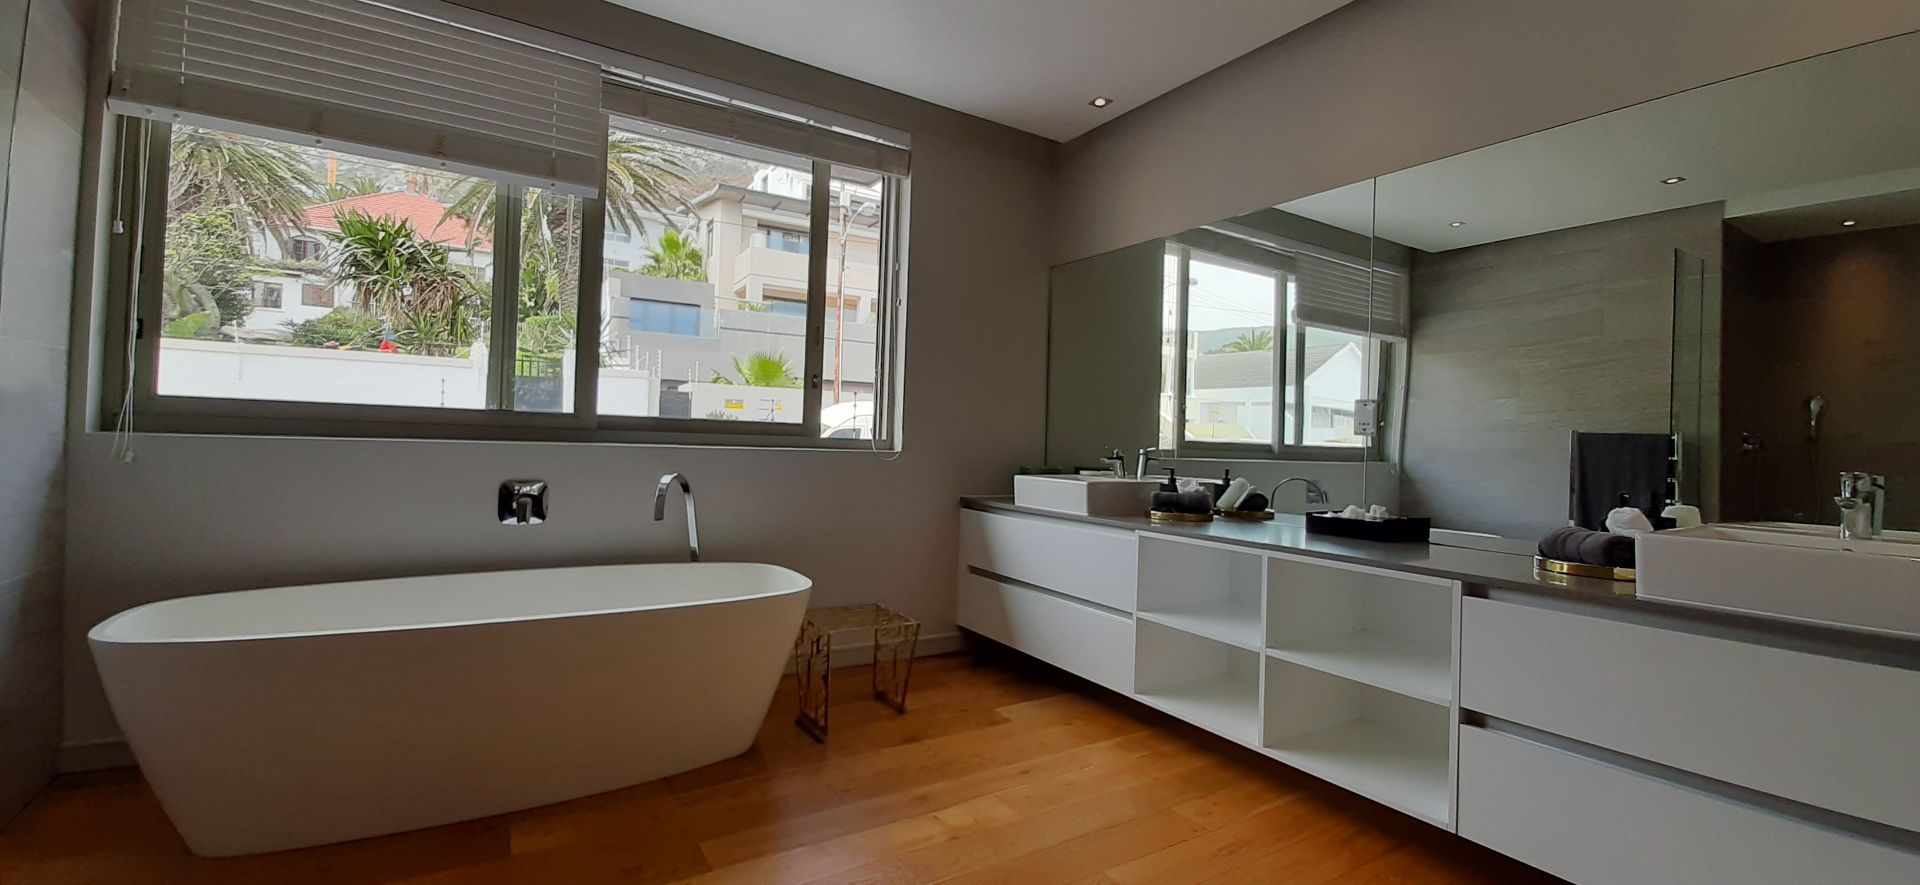 Apartment in Bantry Bay - Main bathroom.jpg